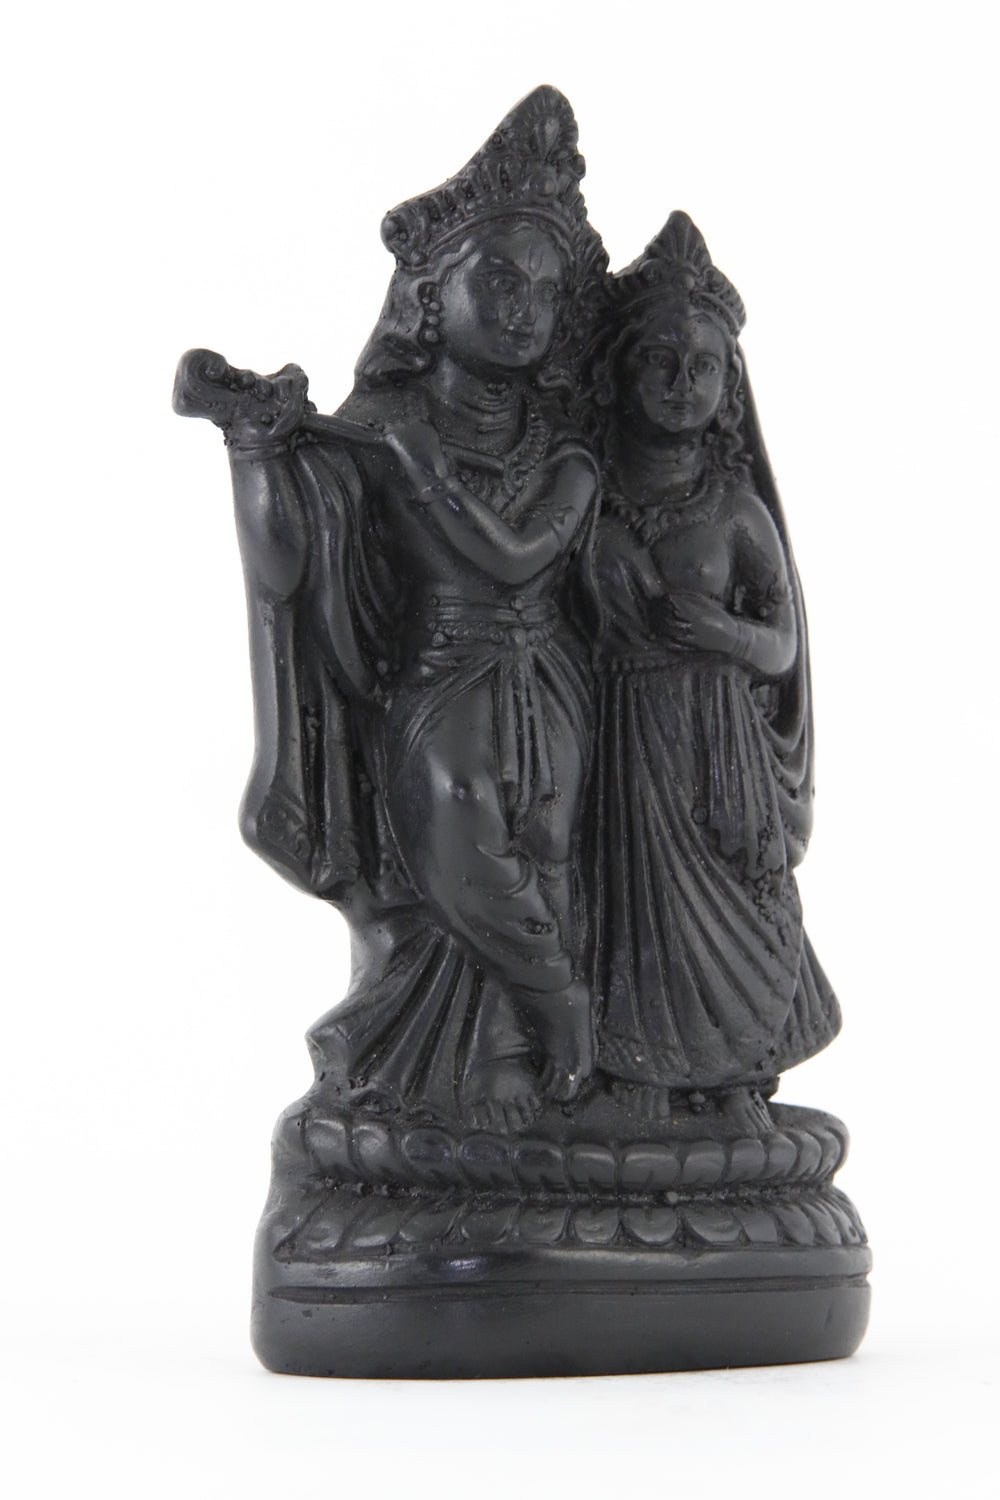 RADHA KRISHNA STATUE DARK SIDE VIEW